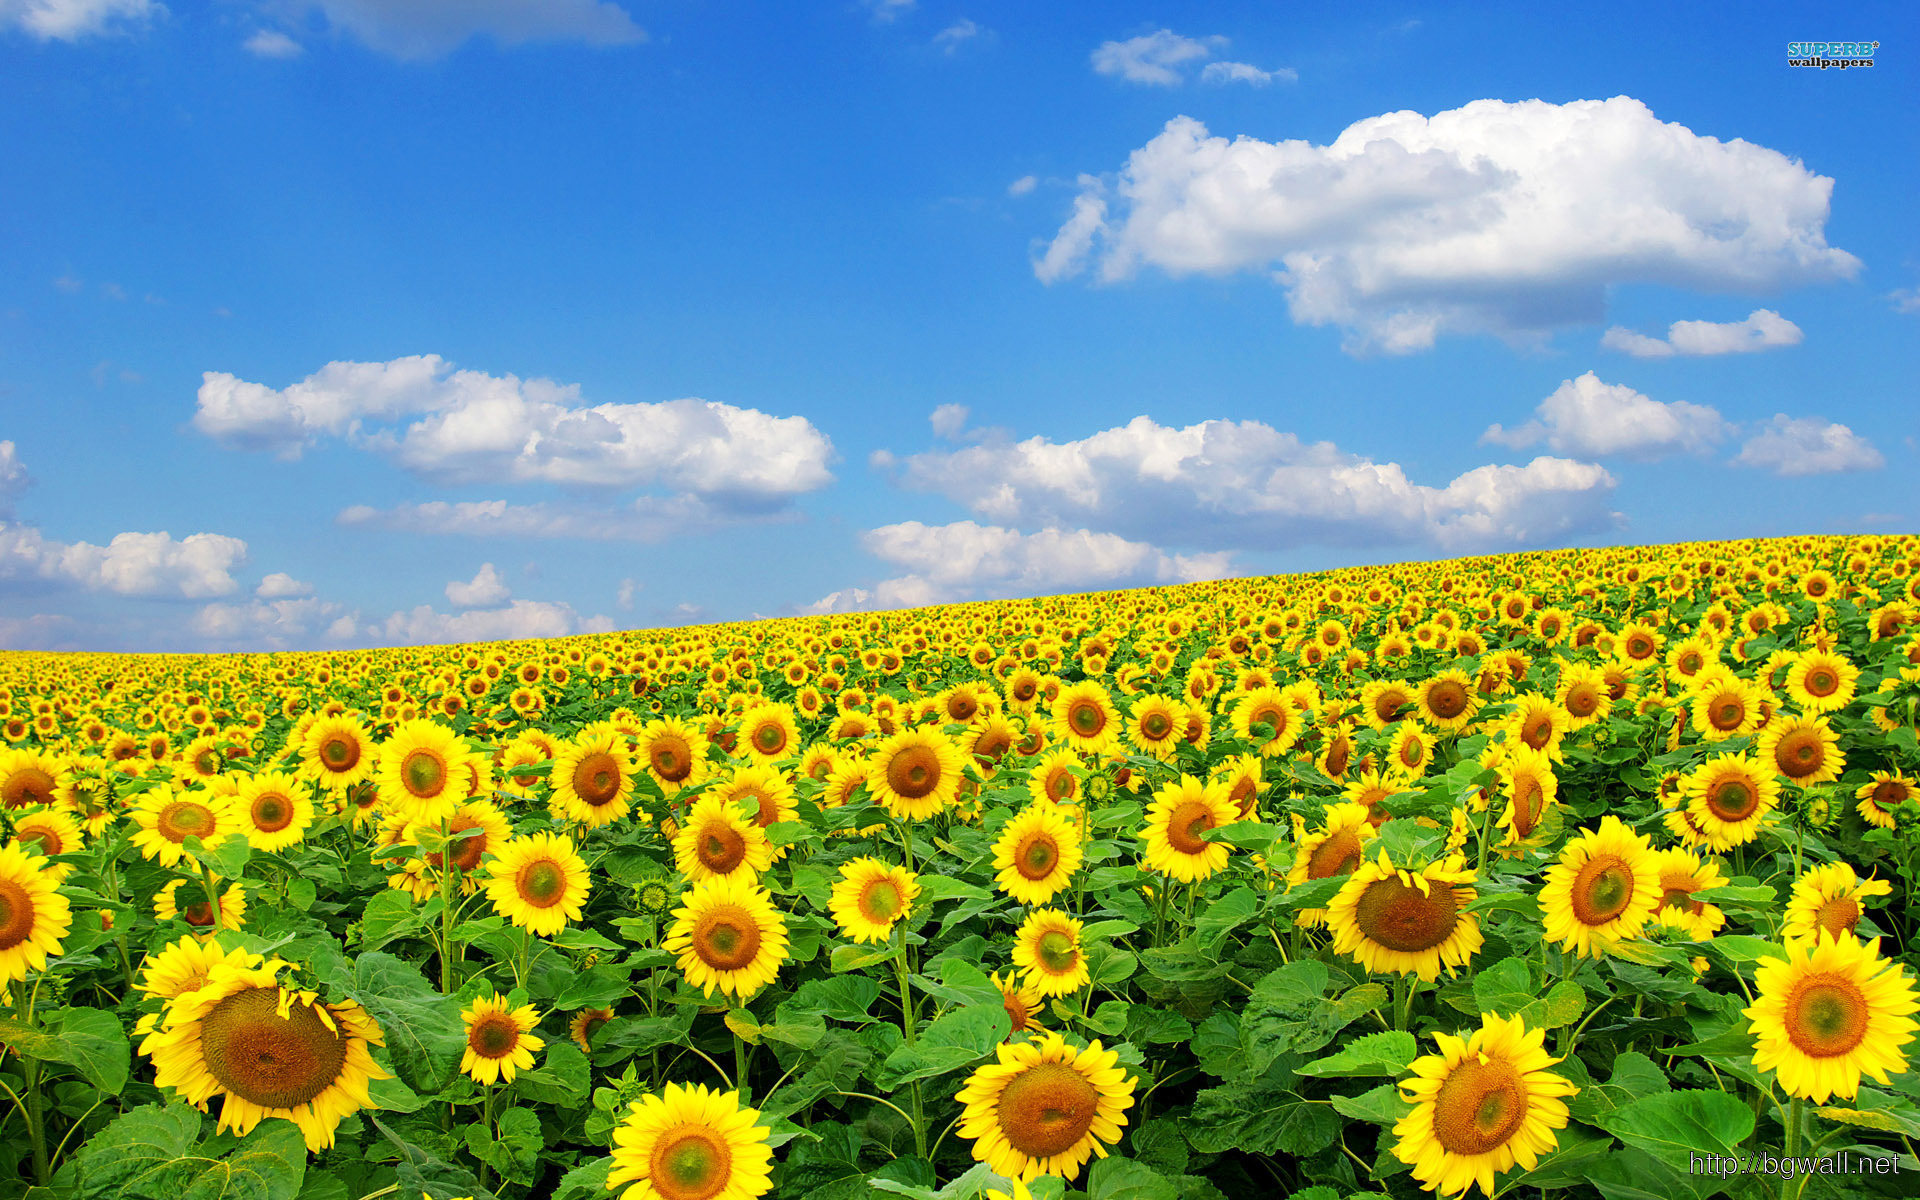 Sunflower Field Wallpaper Full Size